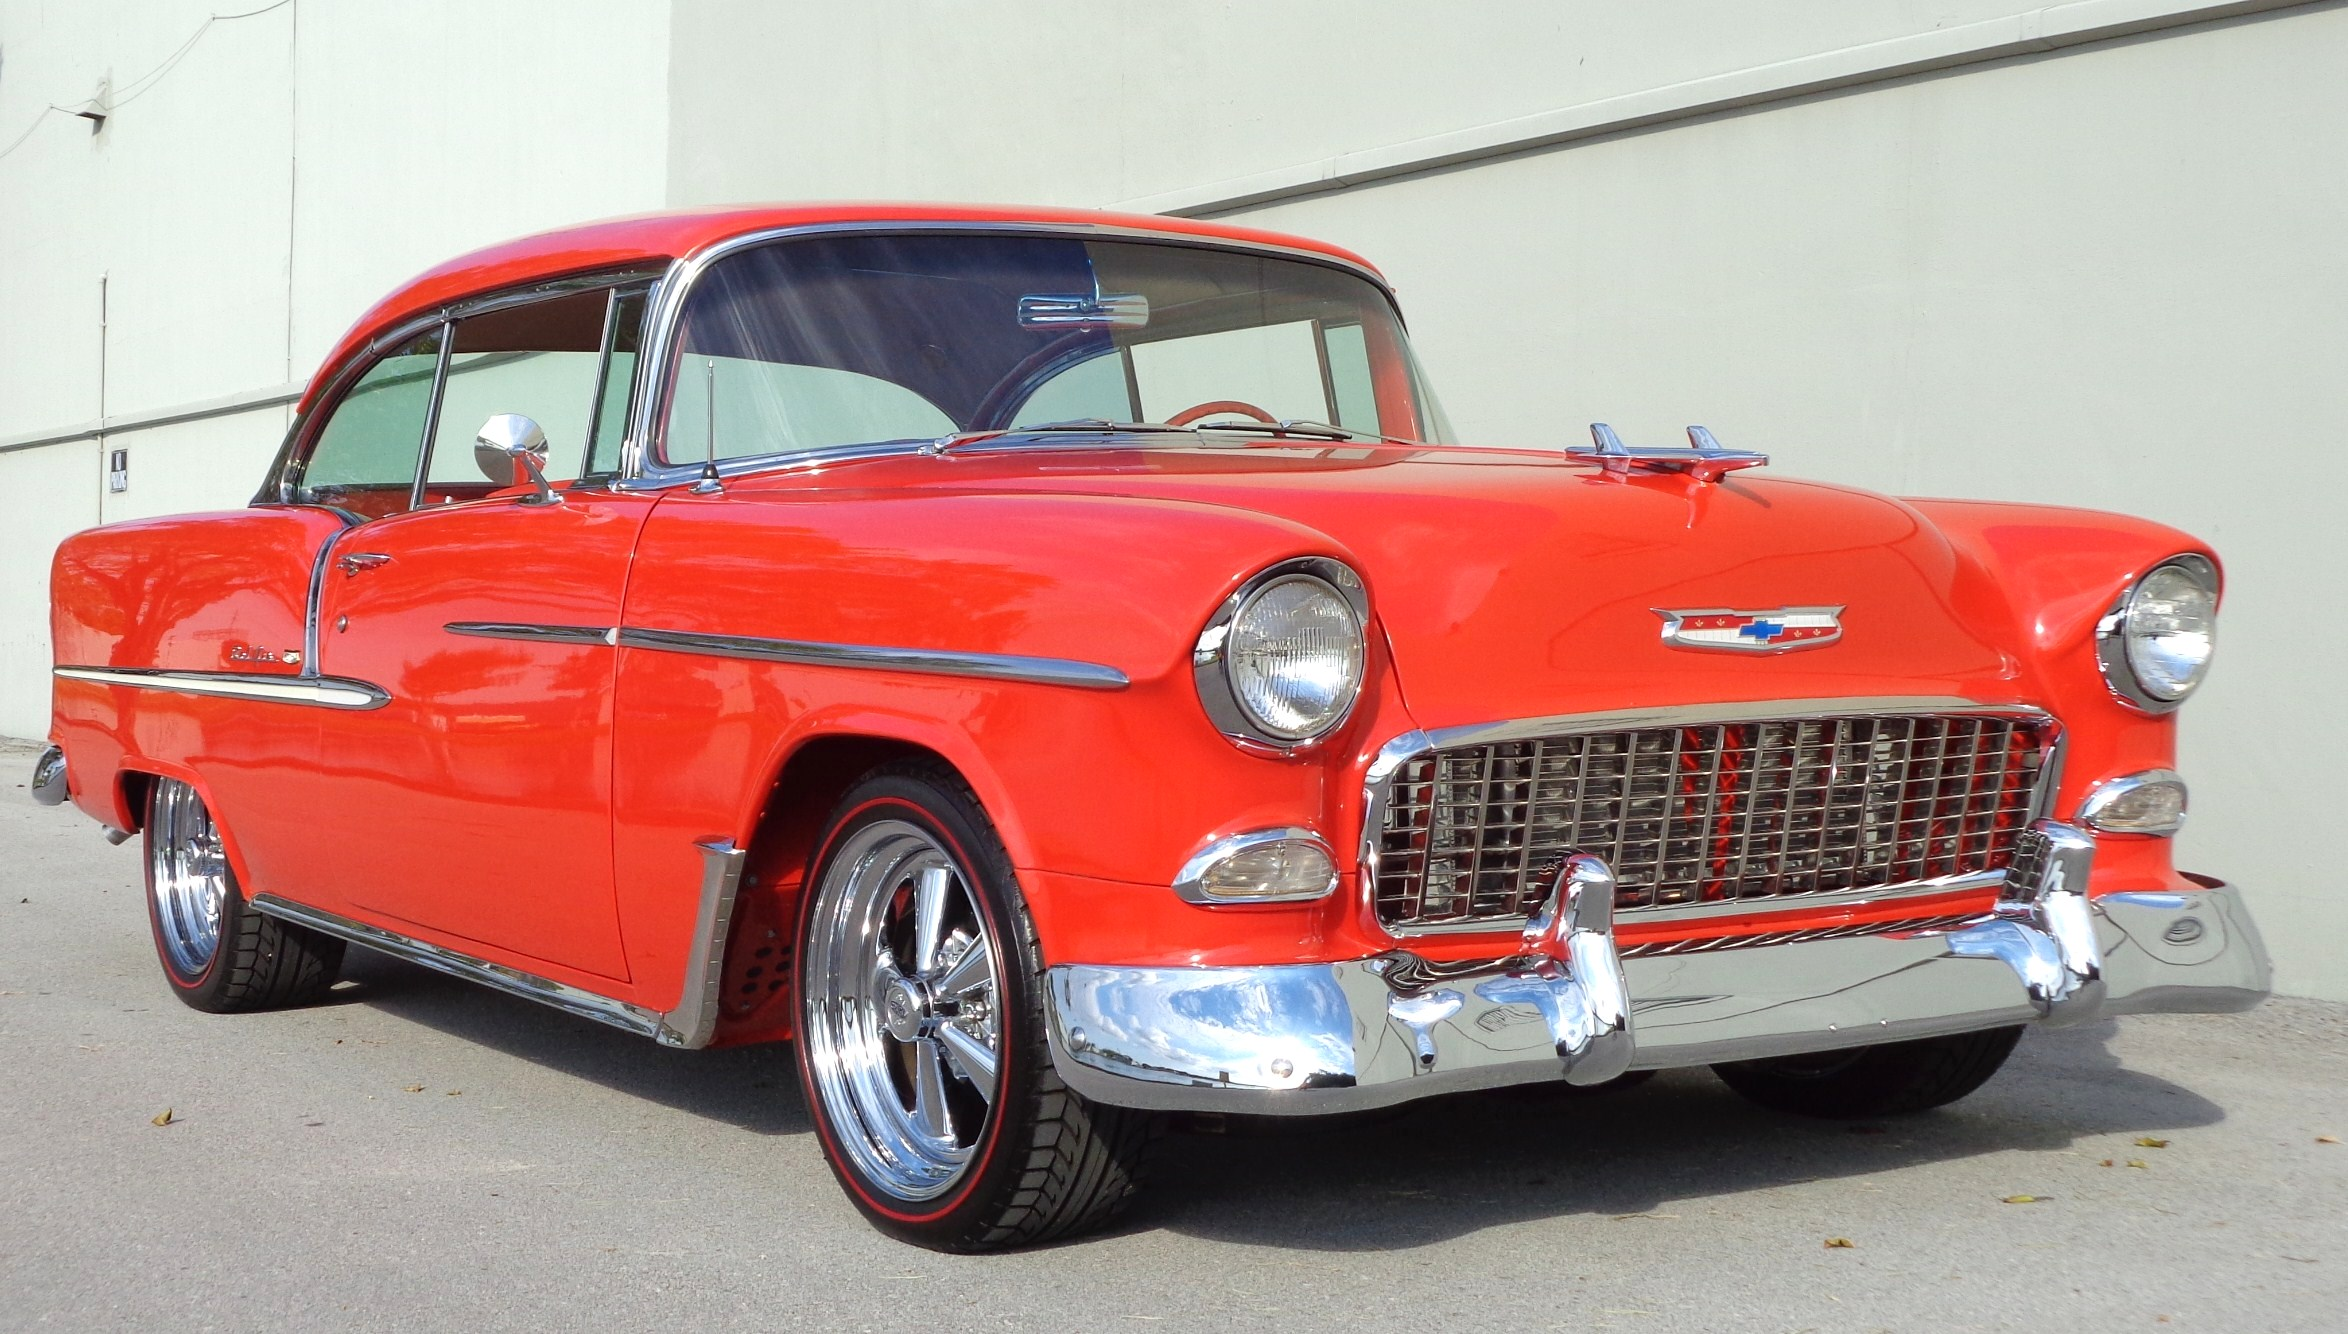 1955 Chevy Bel Air Restomod - Hollywood Wheels Auction Shows